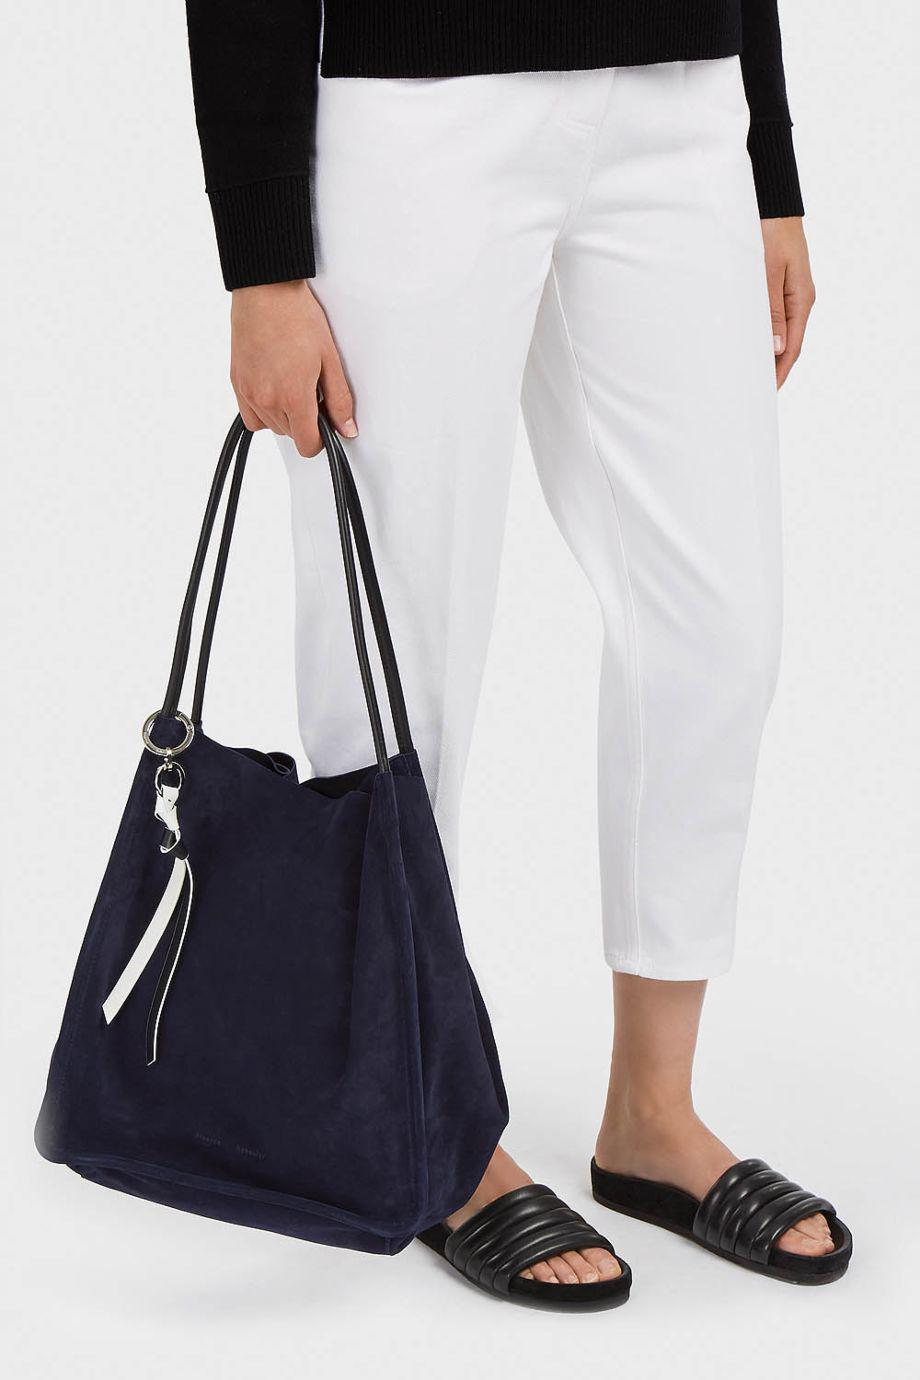 405c89b959b5 Proenza Schouler Extra Large Suede Tote in Blue - Lyst